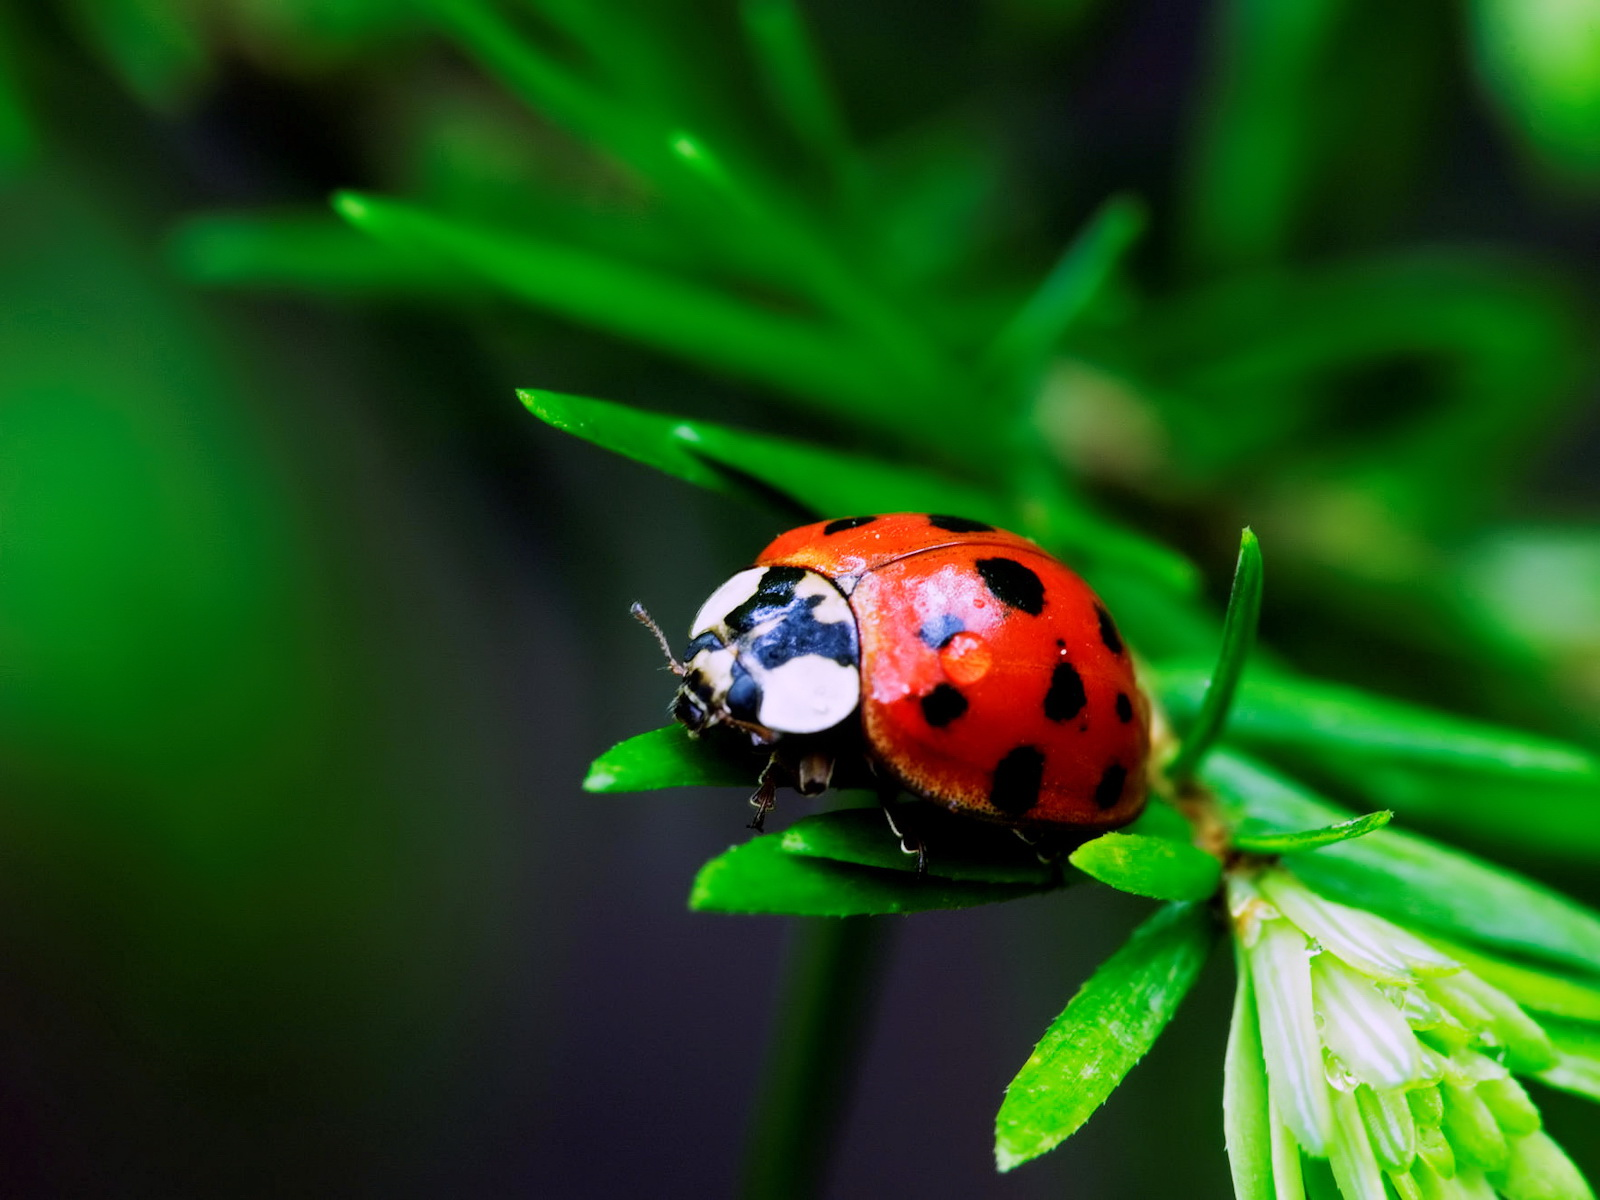 Http Www Thewallpapers Org 1709 Animals Ladybug